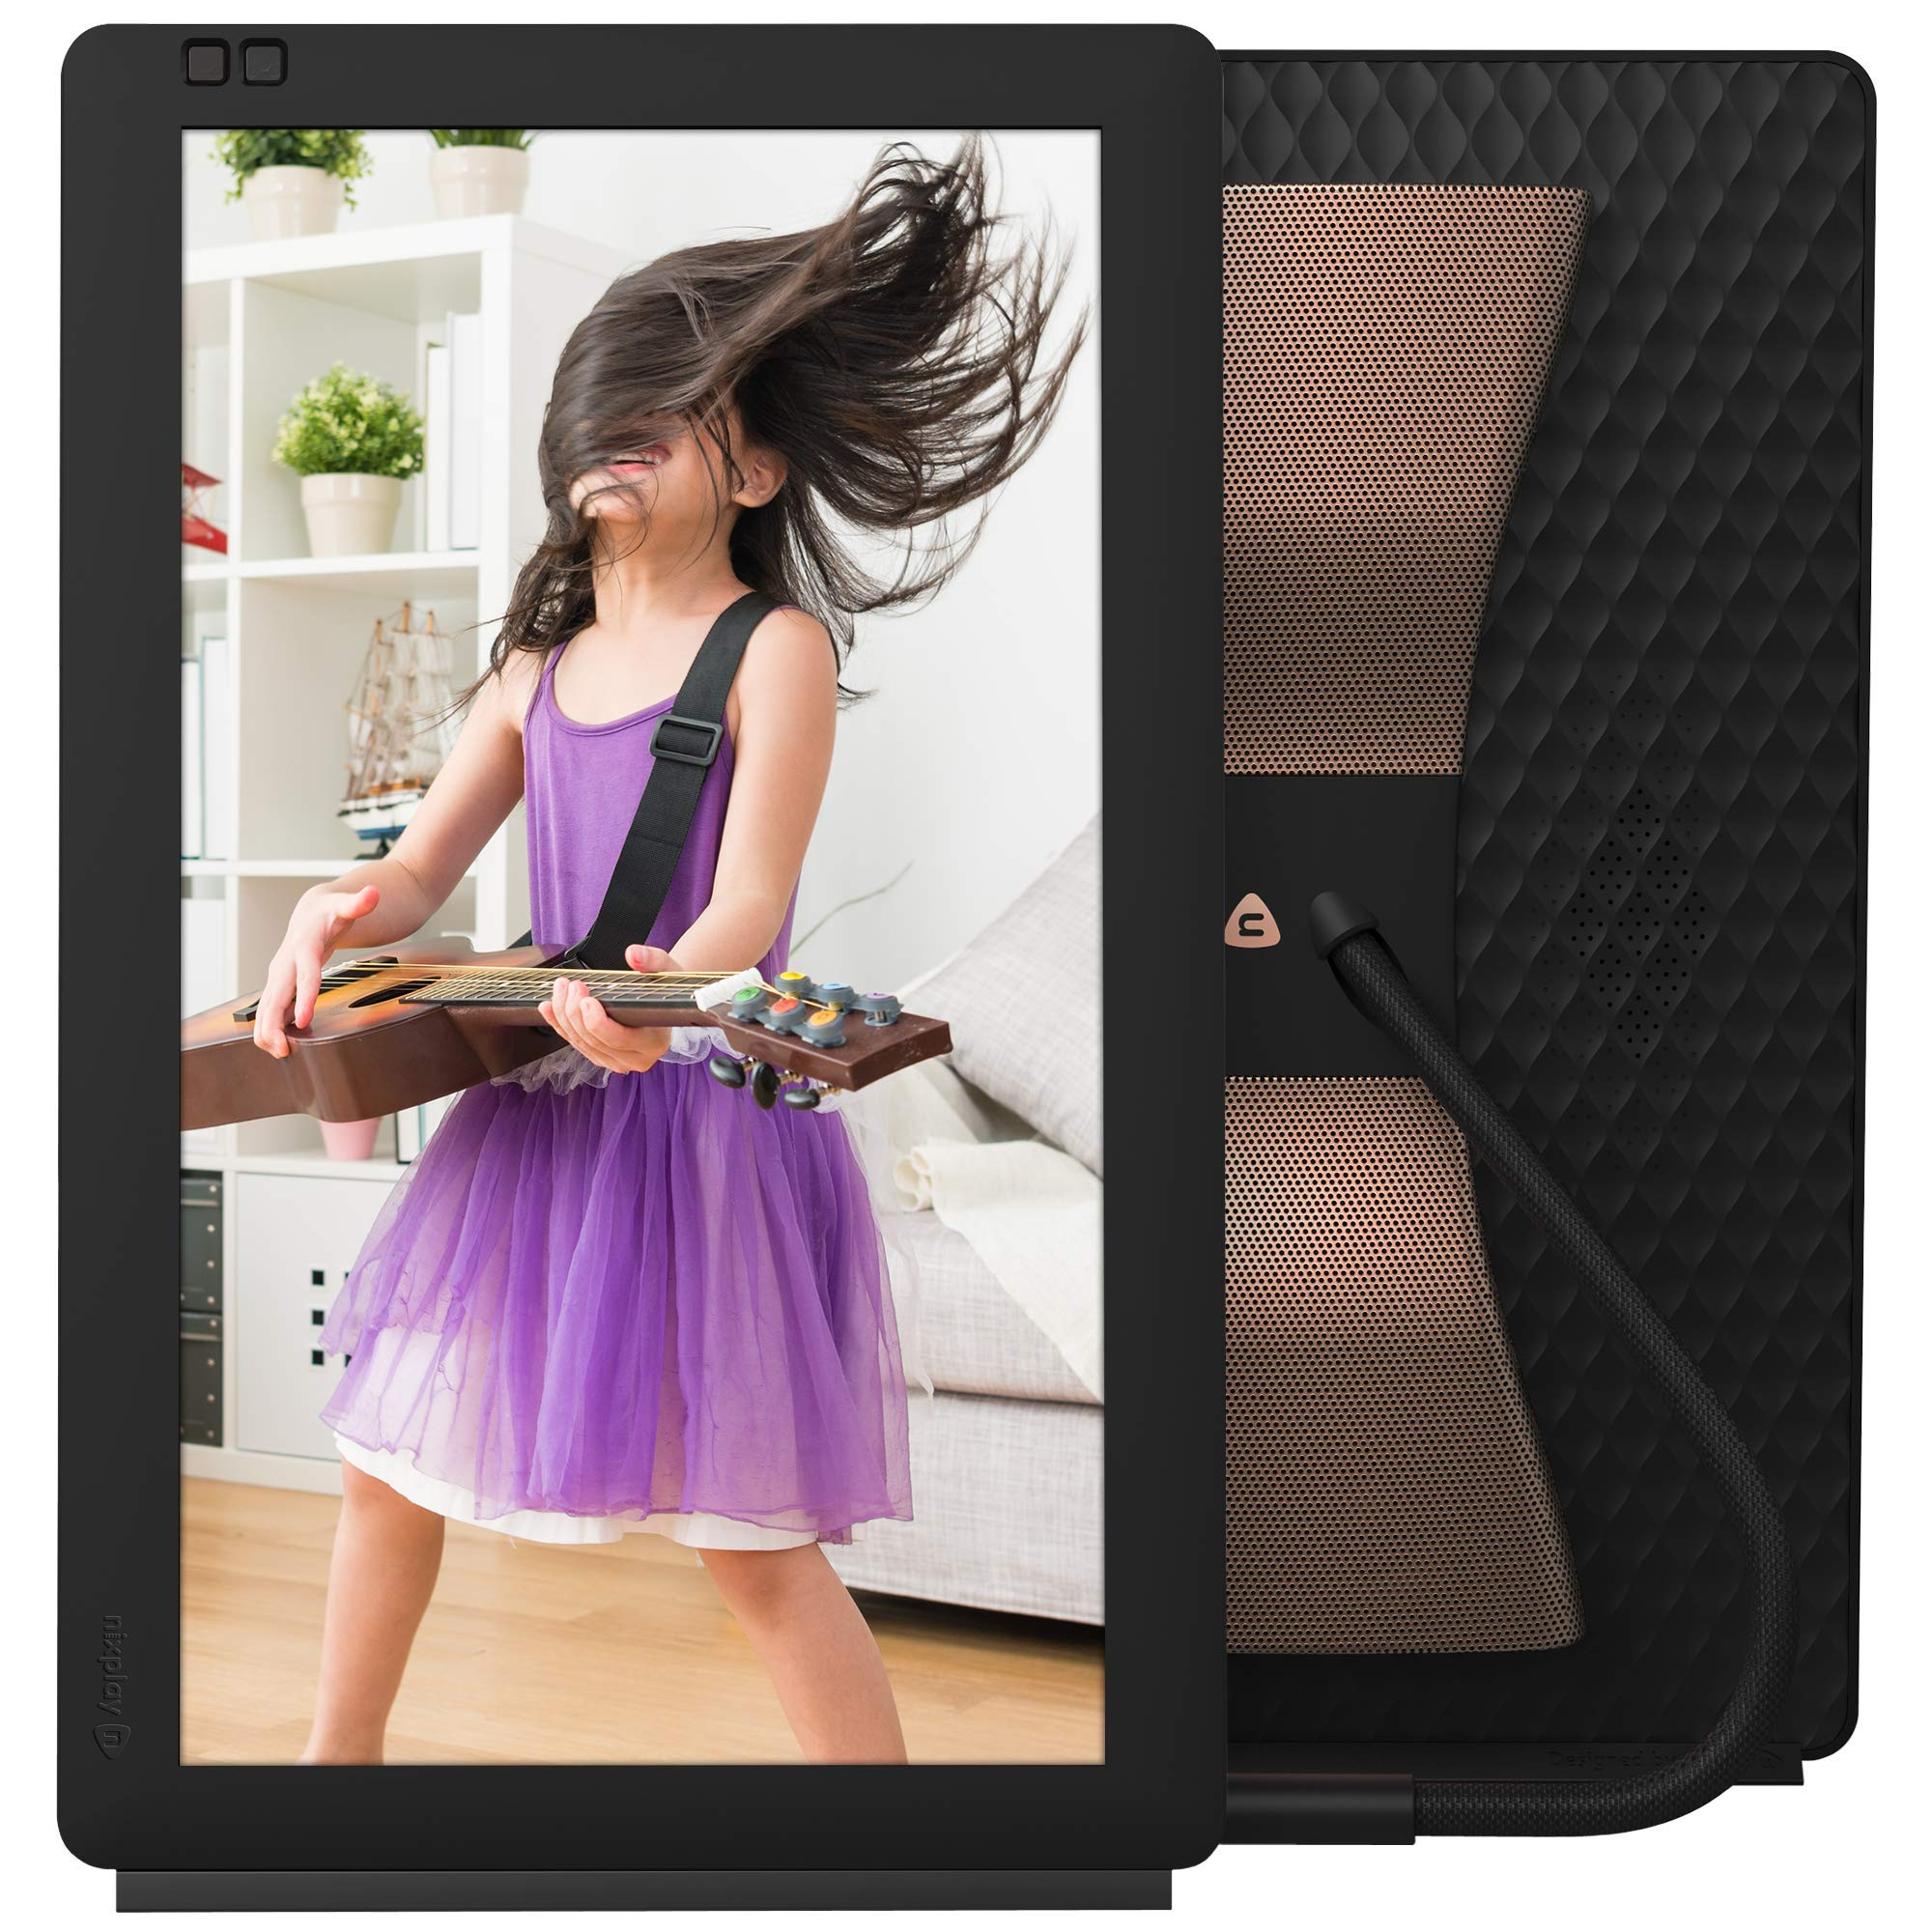 Nixplay Seed Wave 13.3 Inch Digital Wi-Fi Photo Frame W13C Black - Digital Picture Frame with Bluetooth Speakers, Motion Sensor and 10GB Storage, Display and Share Photos via The Nixplay Mobile App by nixplay (Image #1)